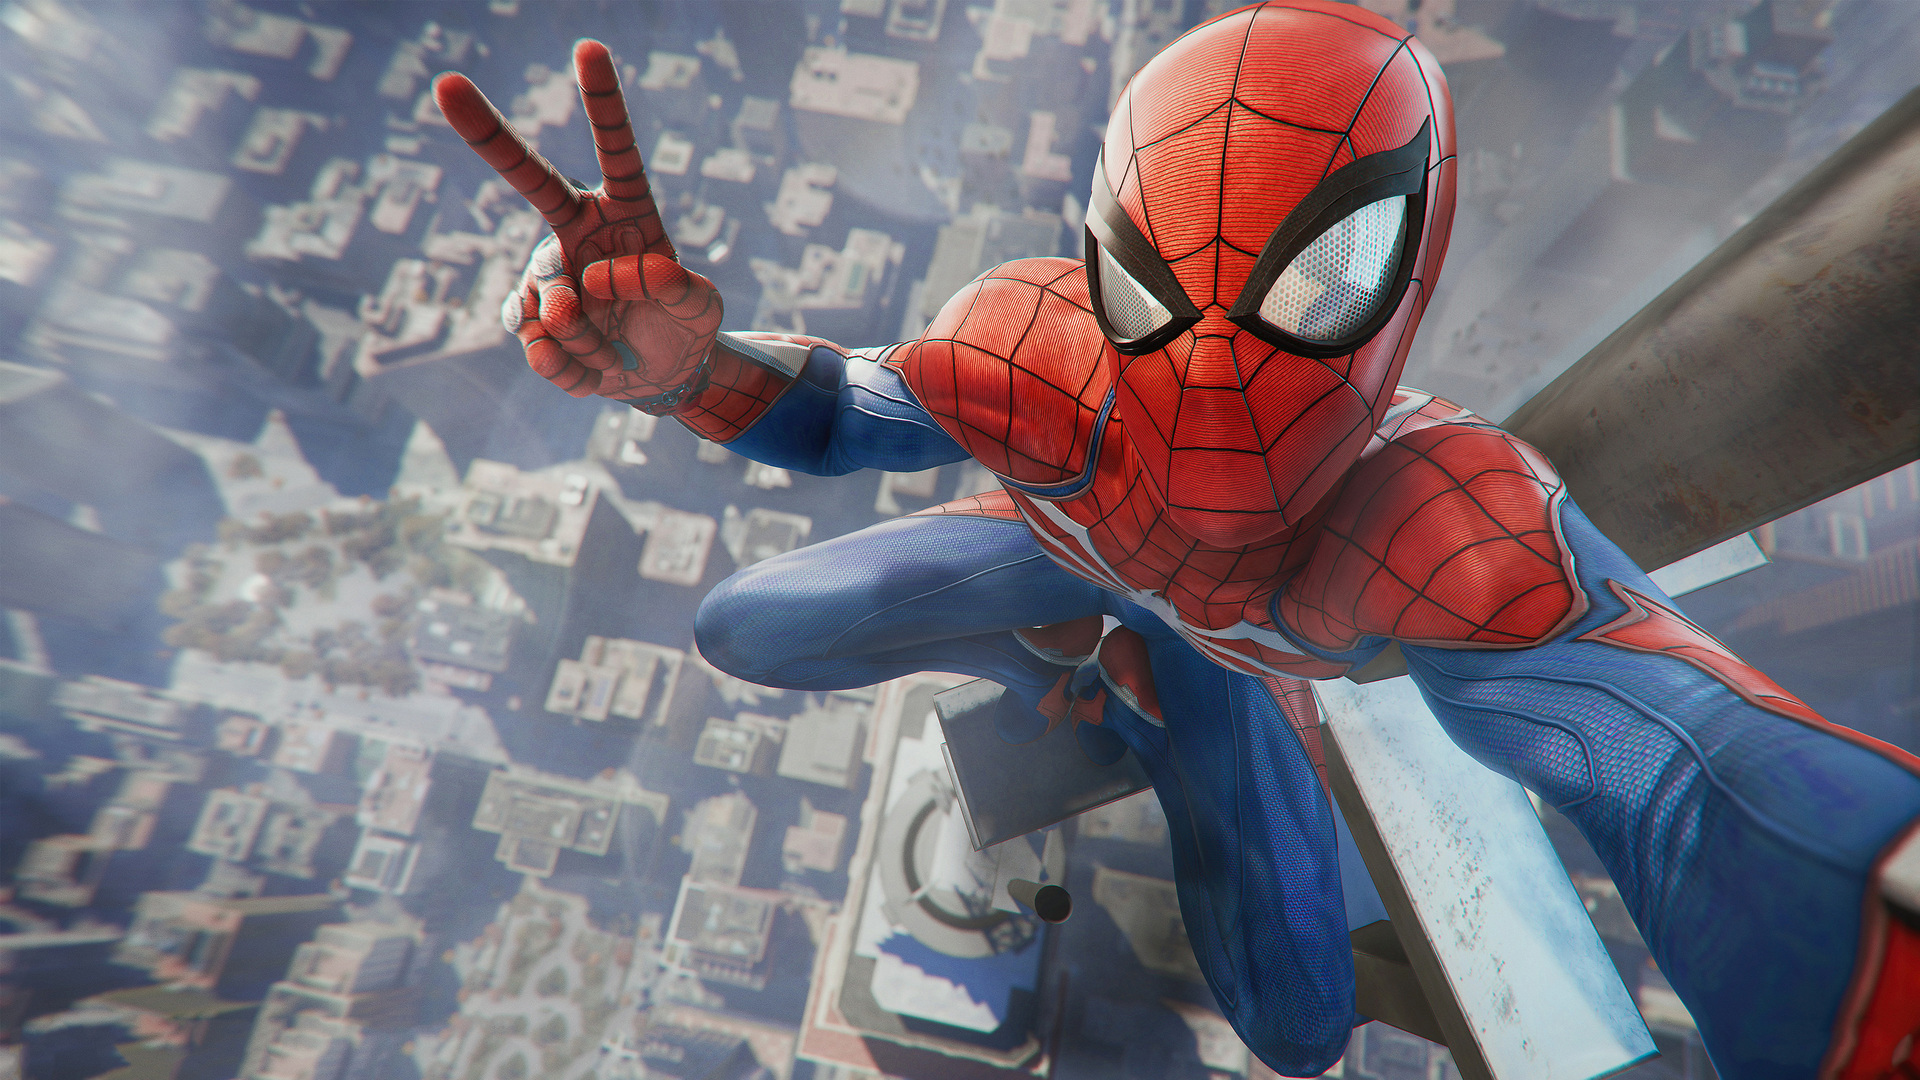 1920x1080 marvel spiderman laptop full hd 1080p hd 4k wallpapers images backgrounds photos - Marvel hd wallpapers 4k ...